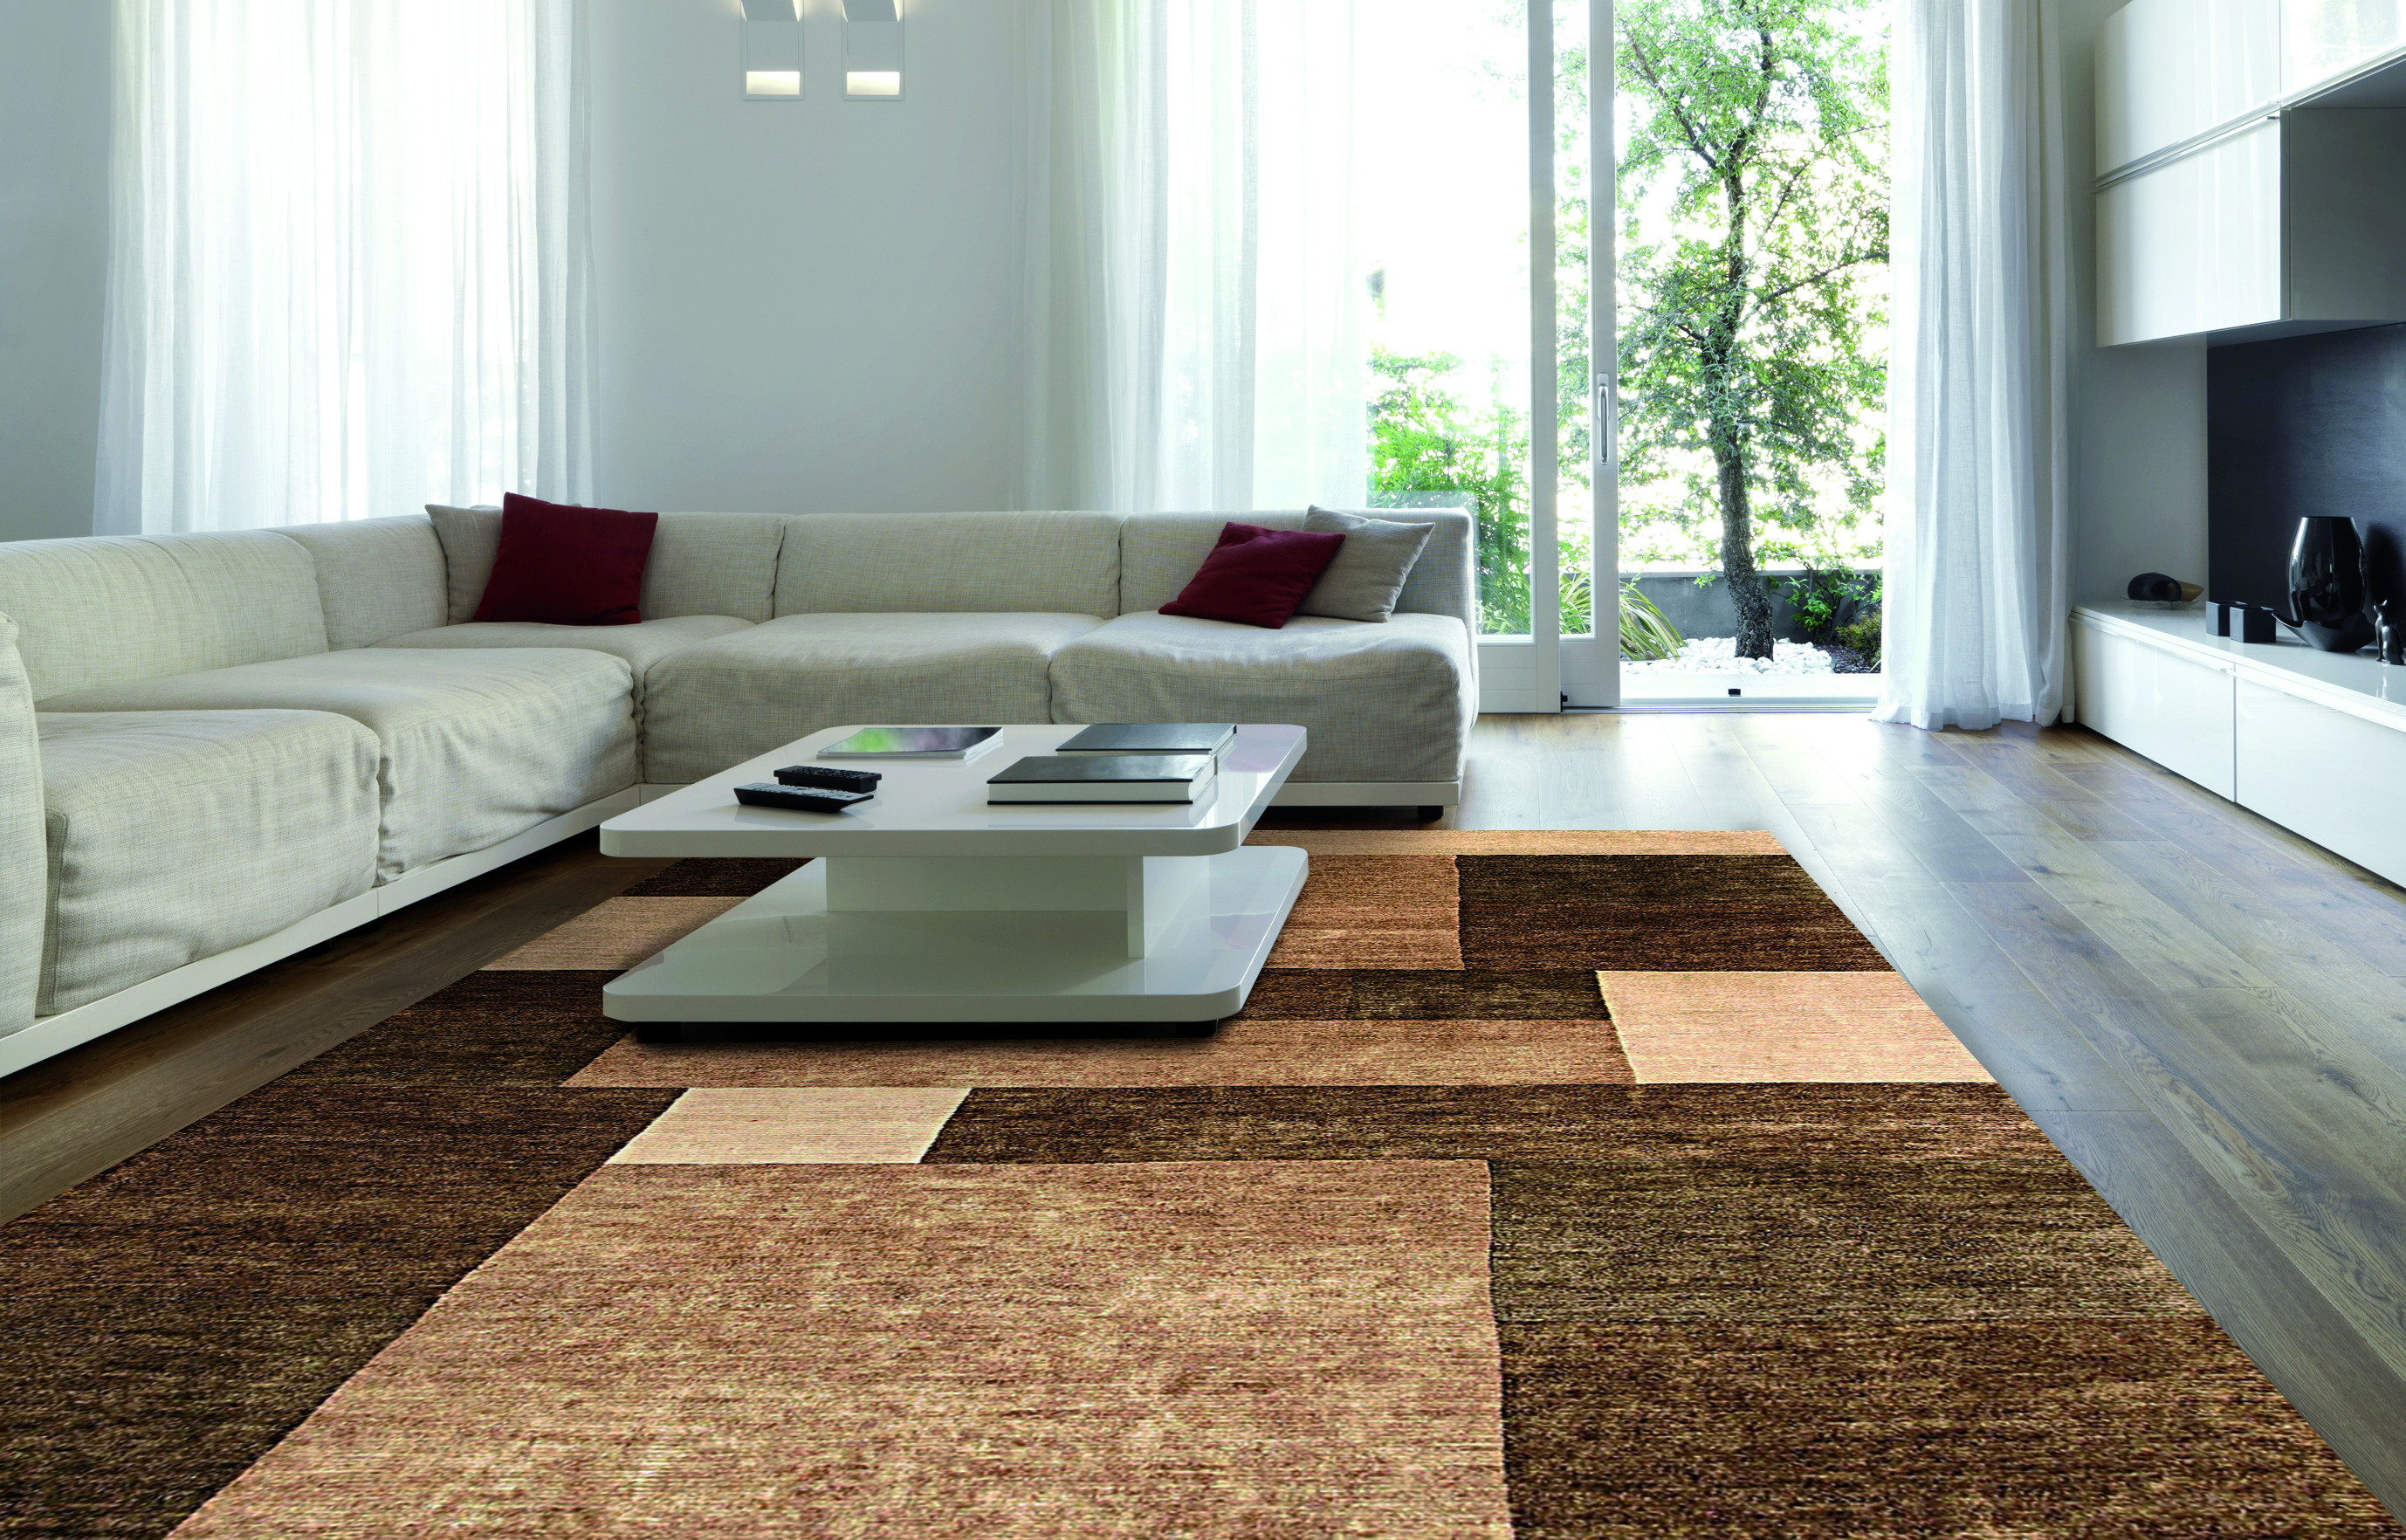 Best ideas about Living Room Carpet . Save or Pin Carpet For Living Room InspirationSeek Now.